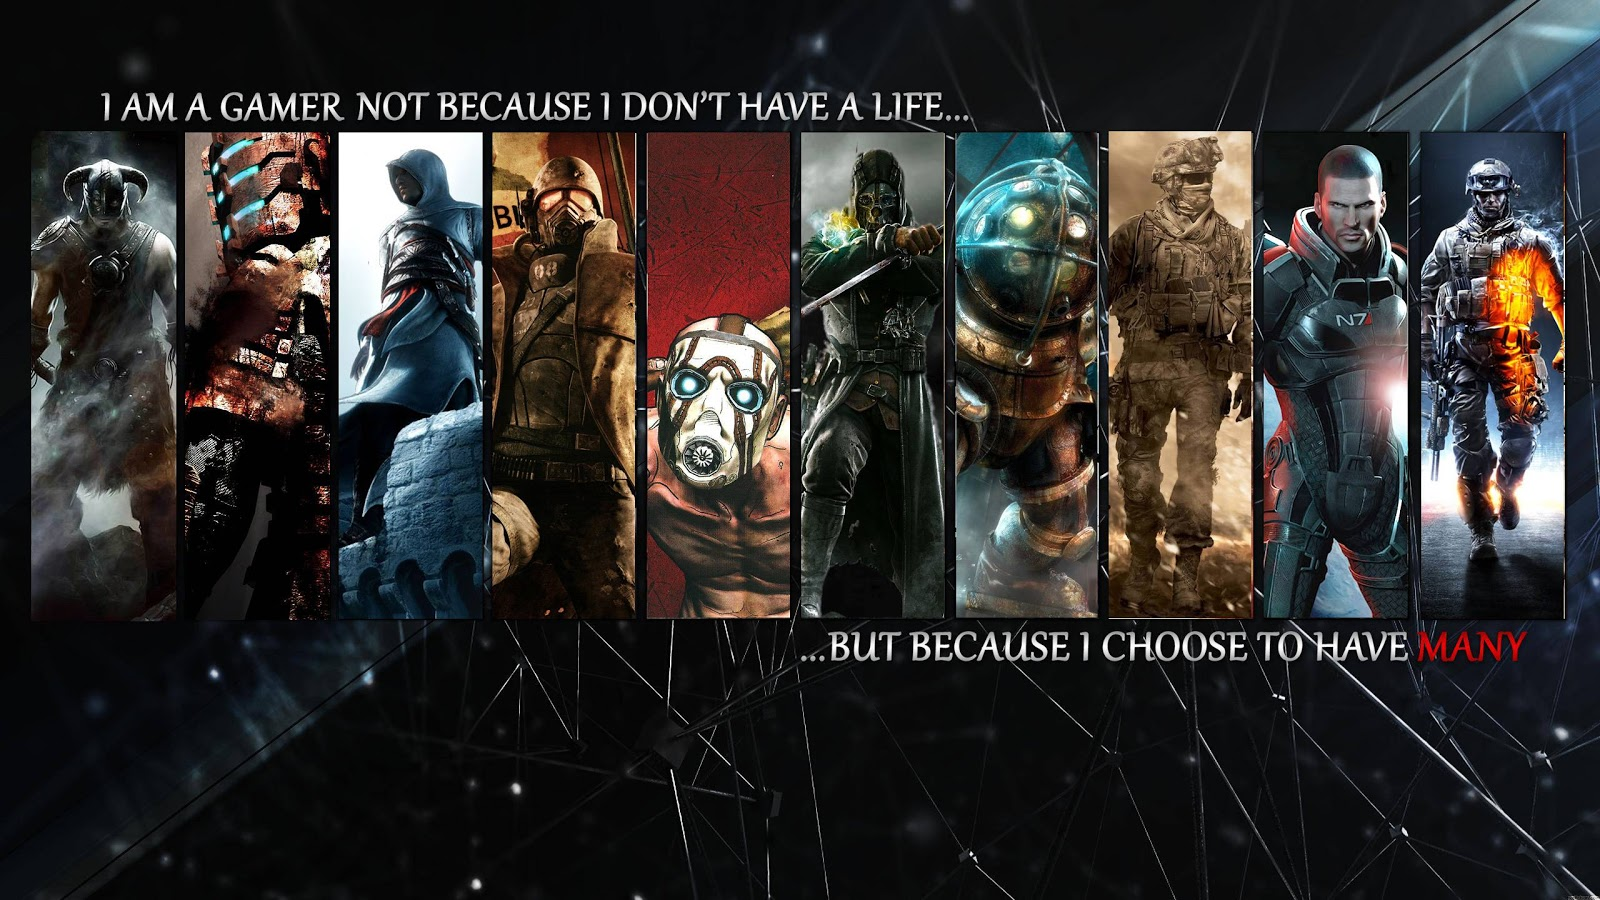 Dont Not I Many Choose I Have I Gamer Life Im Have Because